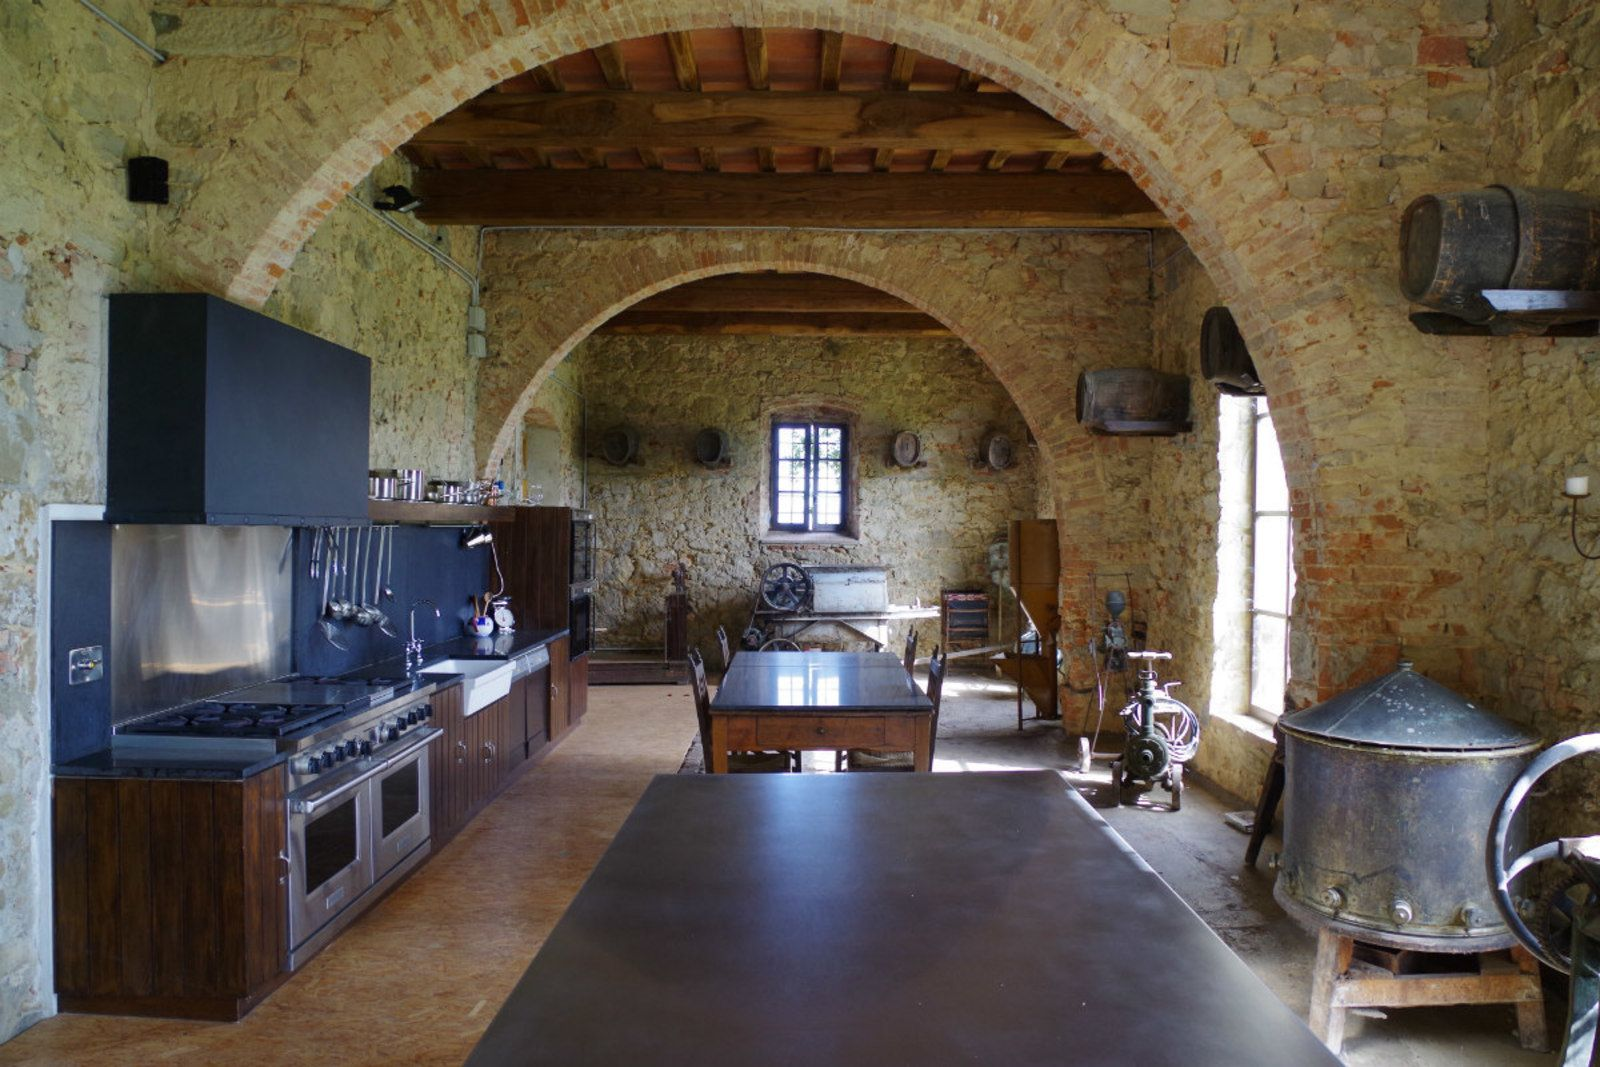 Historic Homes: Sting and Trudie Styler's Beautiful Tuscan Villa in Italy